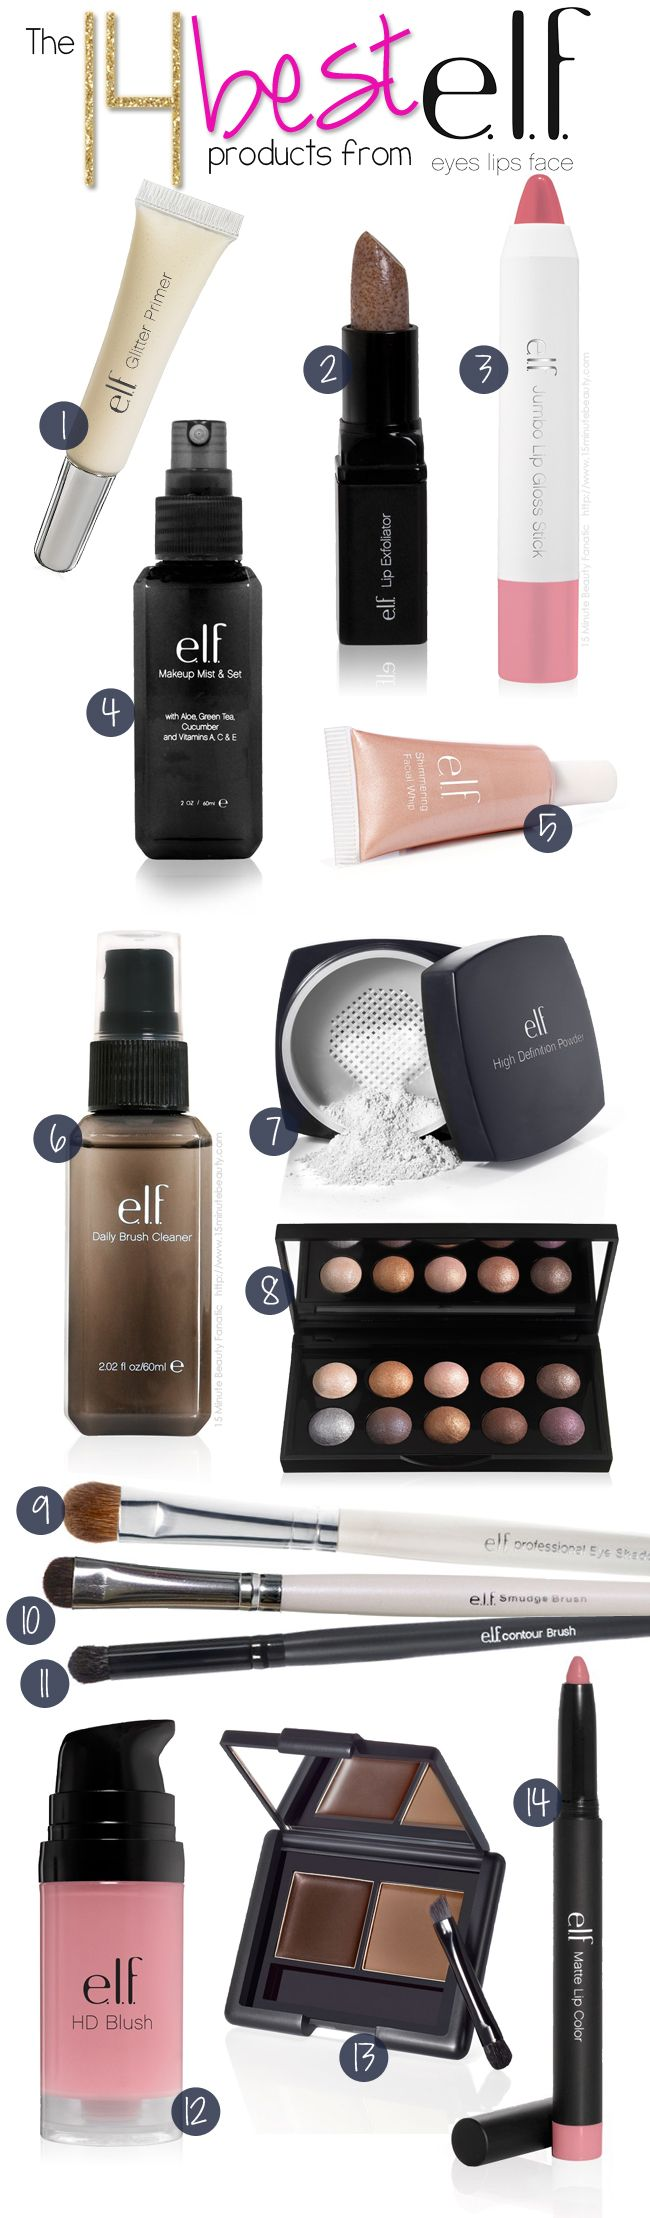 Which products or makeup from Eyes Lips Face are the best? via 15minutebeauty.com